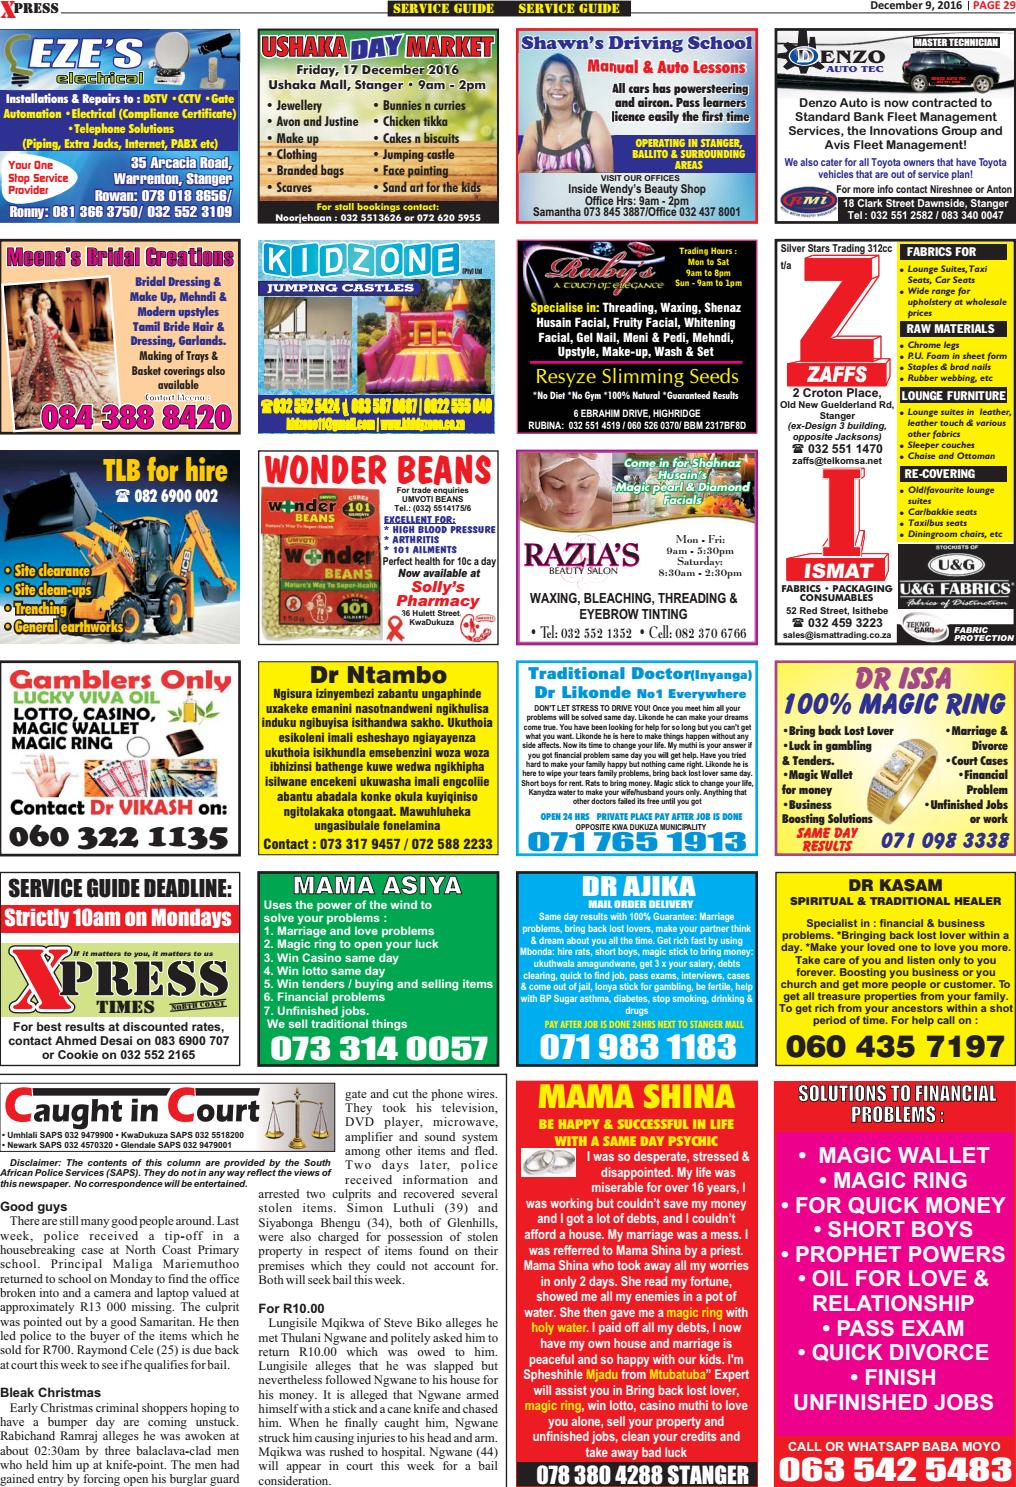 Xpress times 09 12 2016 by Ahmed Desai - issuu